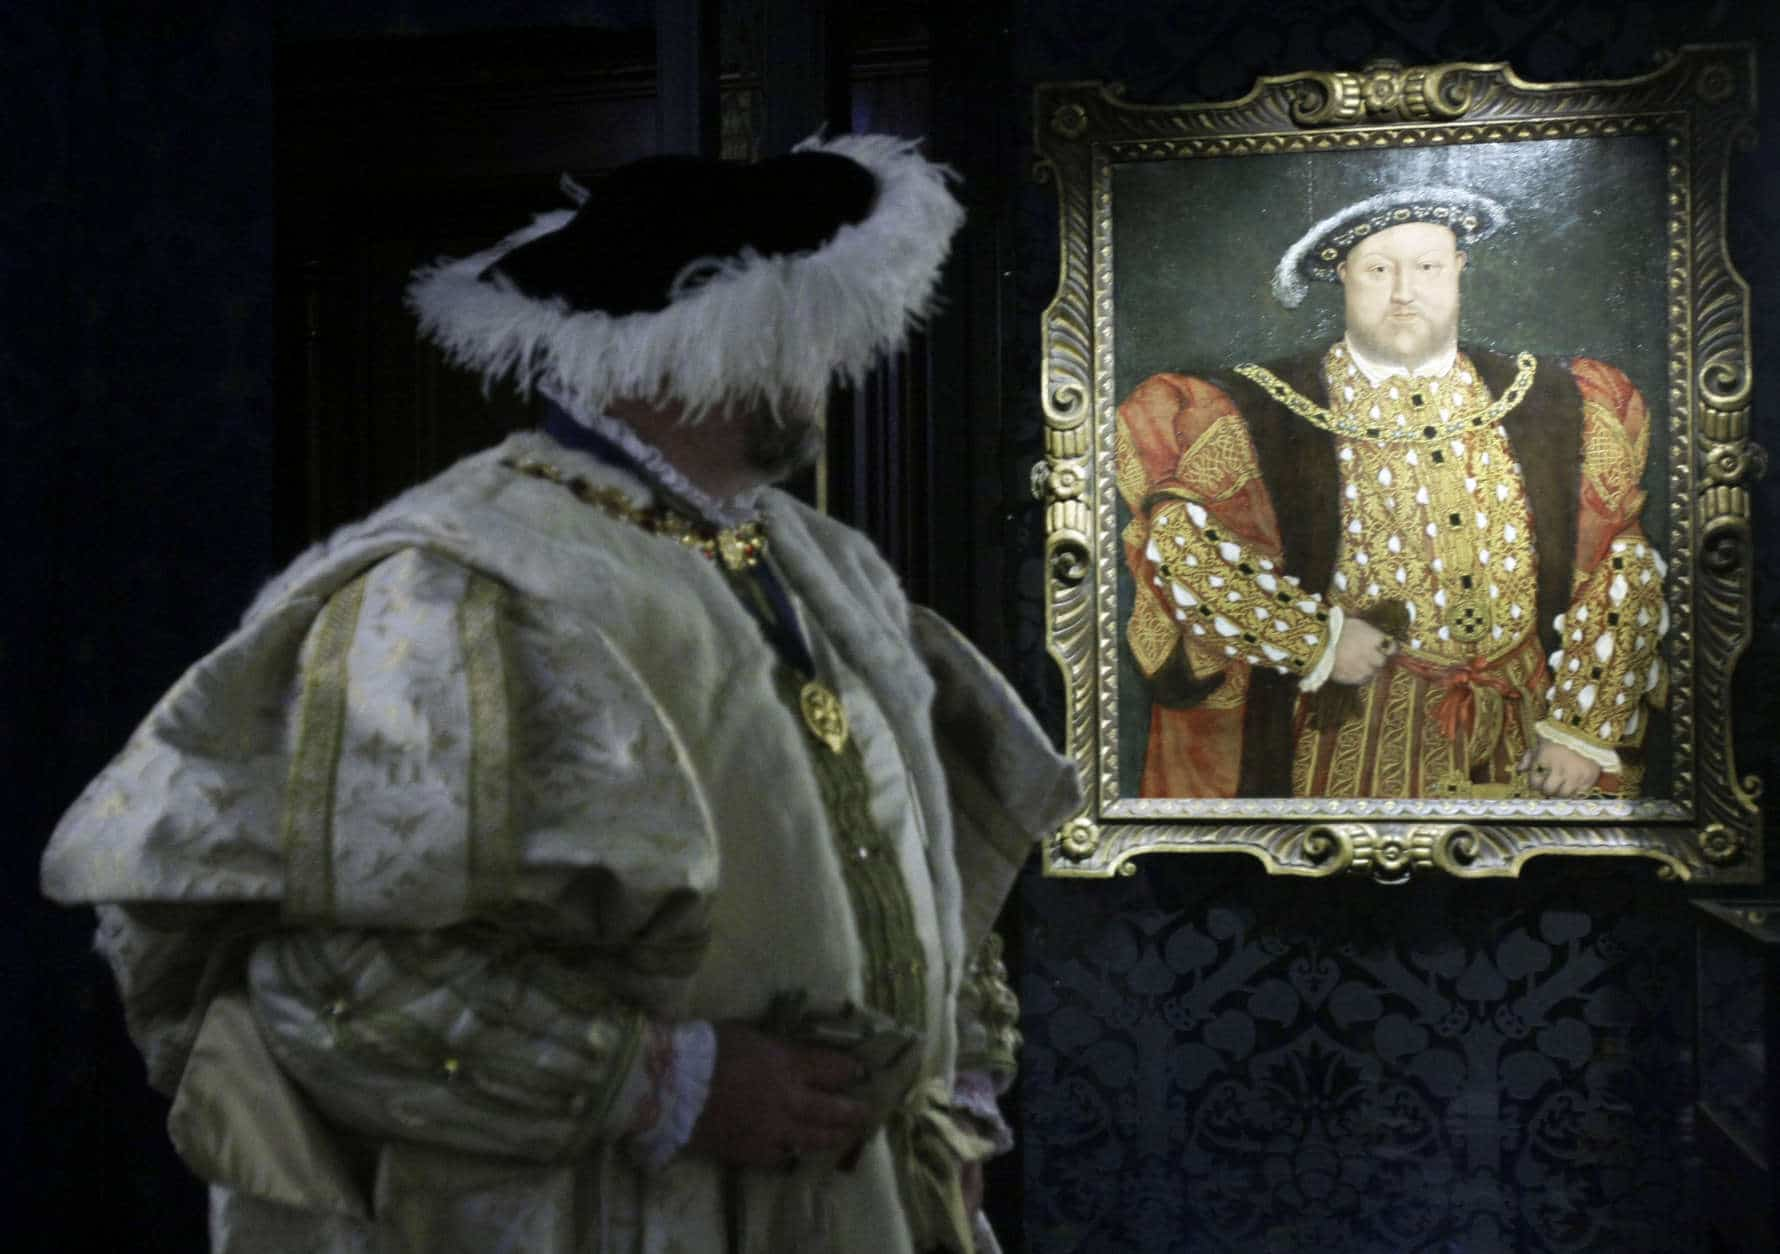 Costumed interpreter Richard Evans, as Britain's King Henry VIII, poses for photographs beside a close copy of a portrait painted during Henry's reign by the German artist Hans Holbein, at Hampton Court Palace, on the outskirts of London, Thursday, April 9, 2009.  The original painting did not survive, with this copy painting being made around 1540 by an artist in the circle of Hans Holbein.  During 2009, King Henry VIII's most famous royal residence plays host to 'Henry VIII: heads and hearts' a year-long programme of events and celebratory activities to mark the Tudor monarch's accession to the throne.  (AP Photo/Matt Dunham)